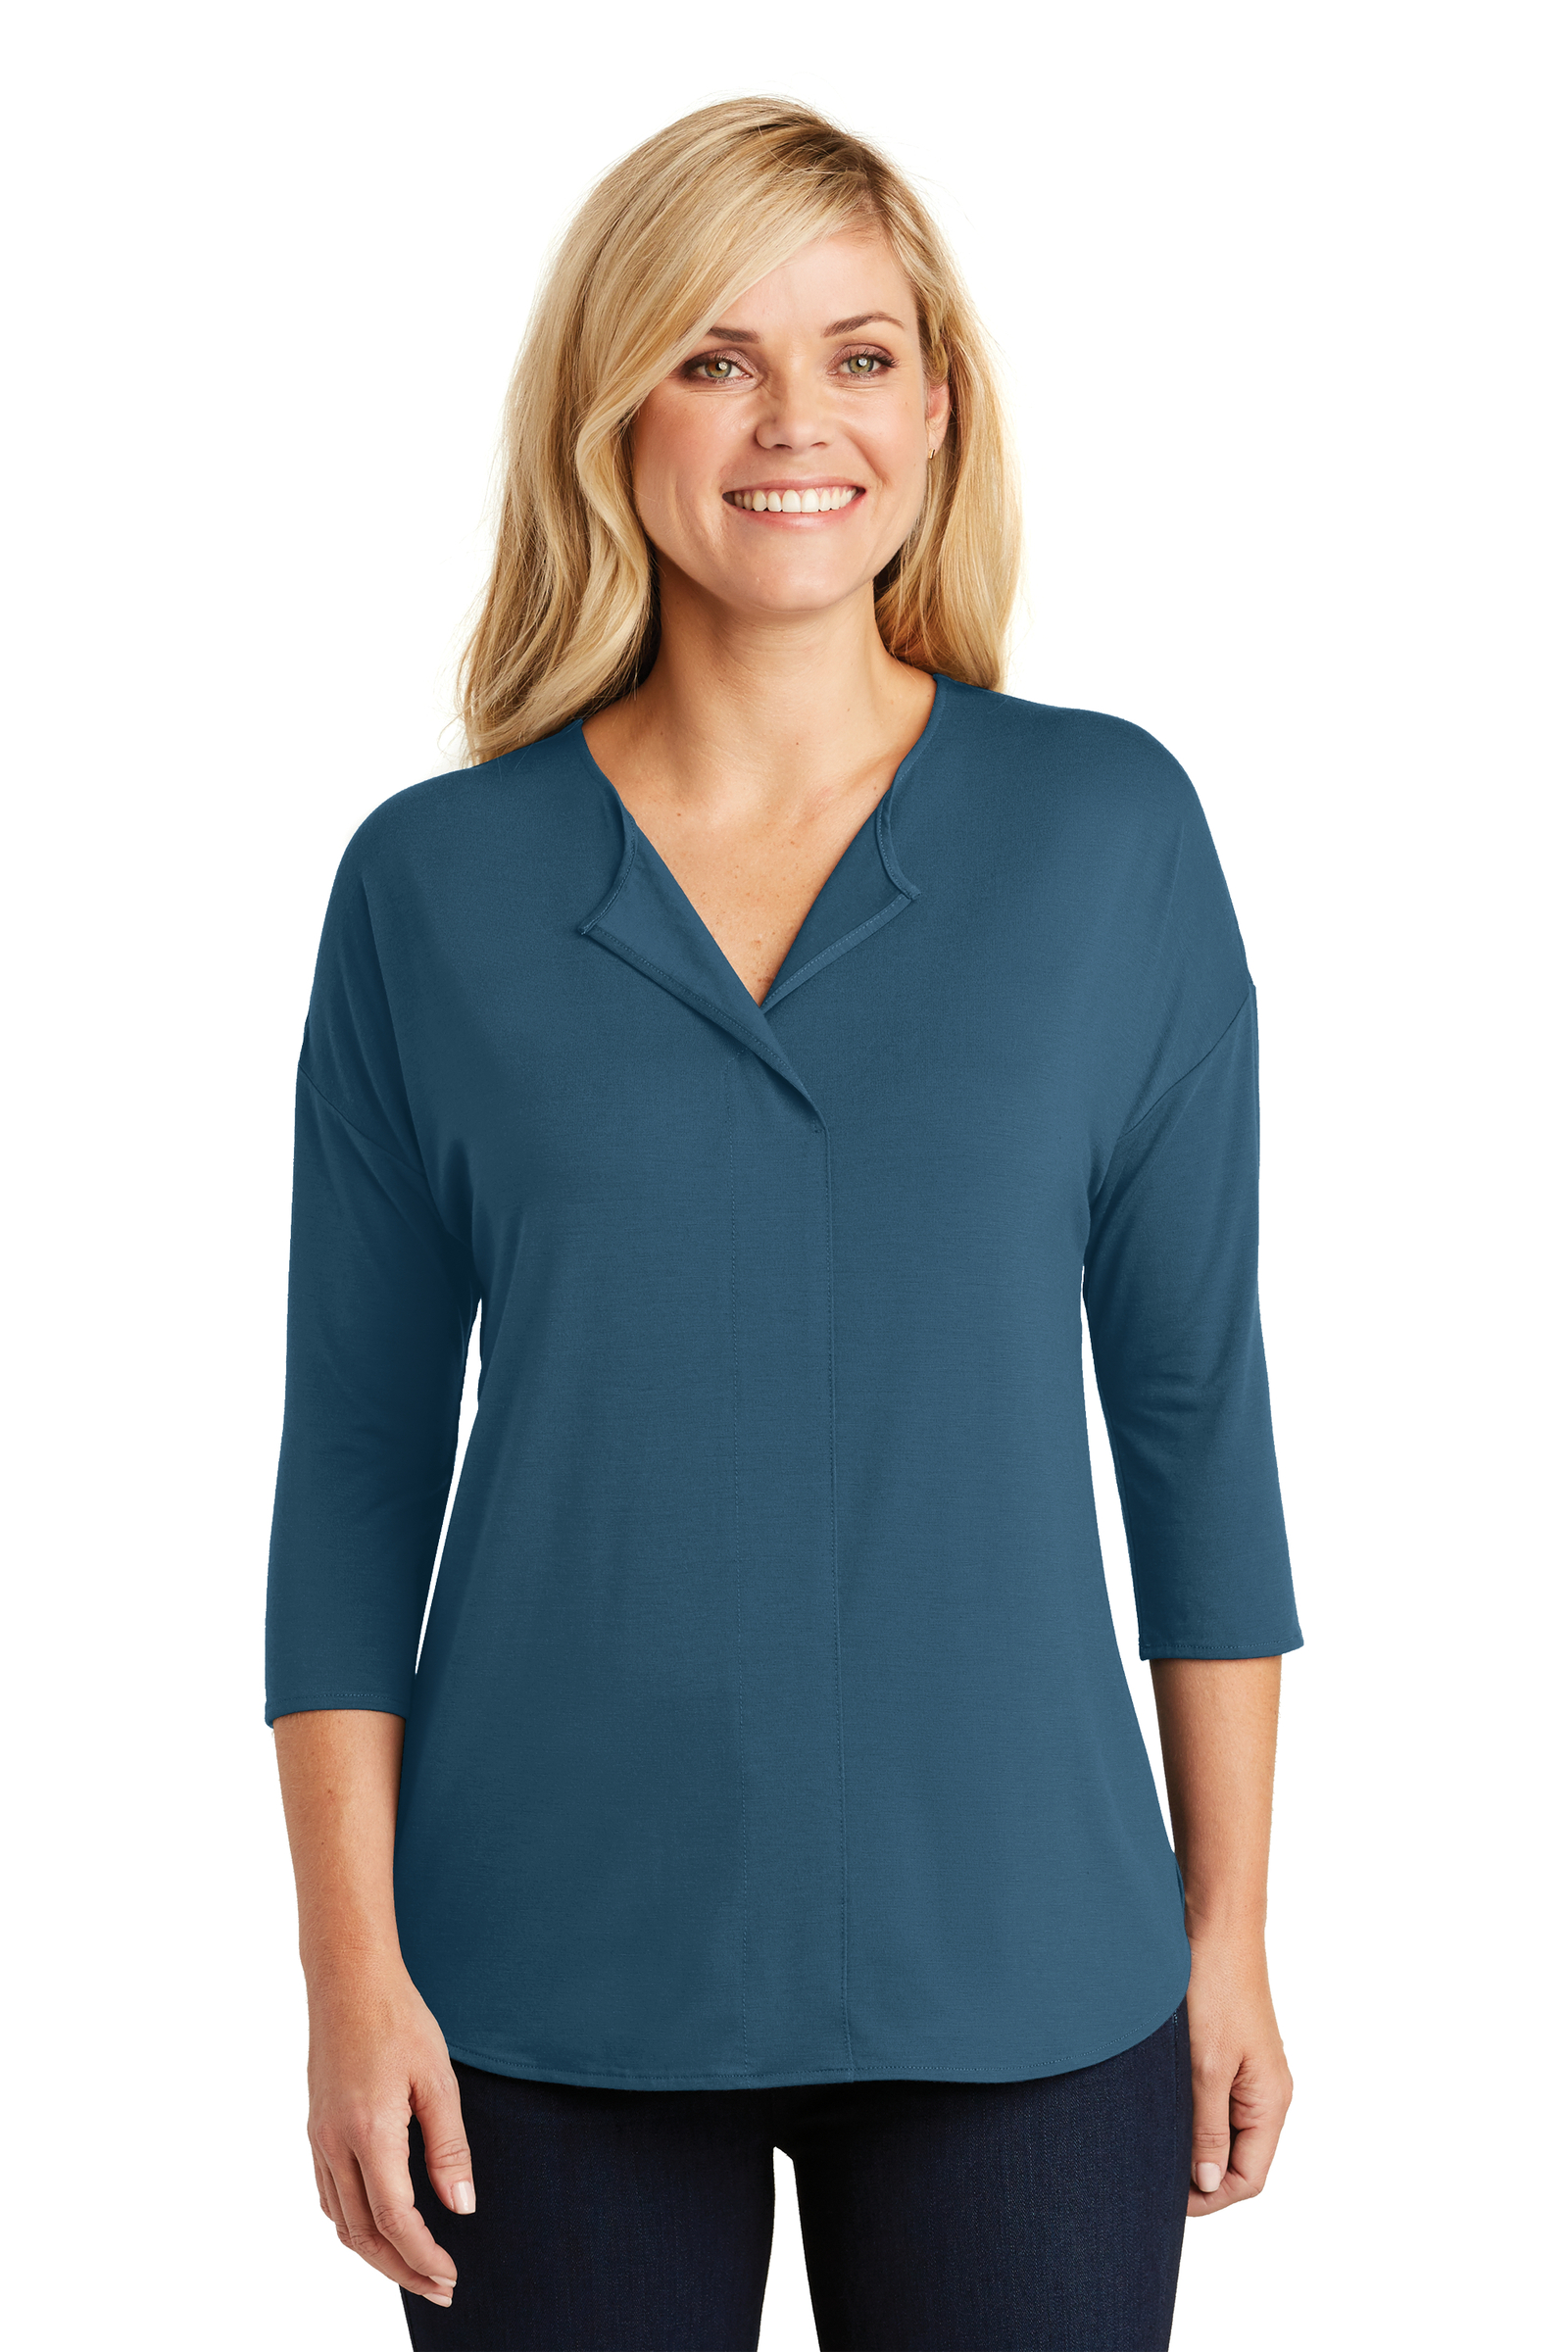 Port Authority Embroidered Women's Concept 3/4-Sleeve Soft Split Neck Top